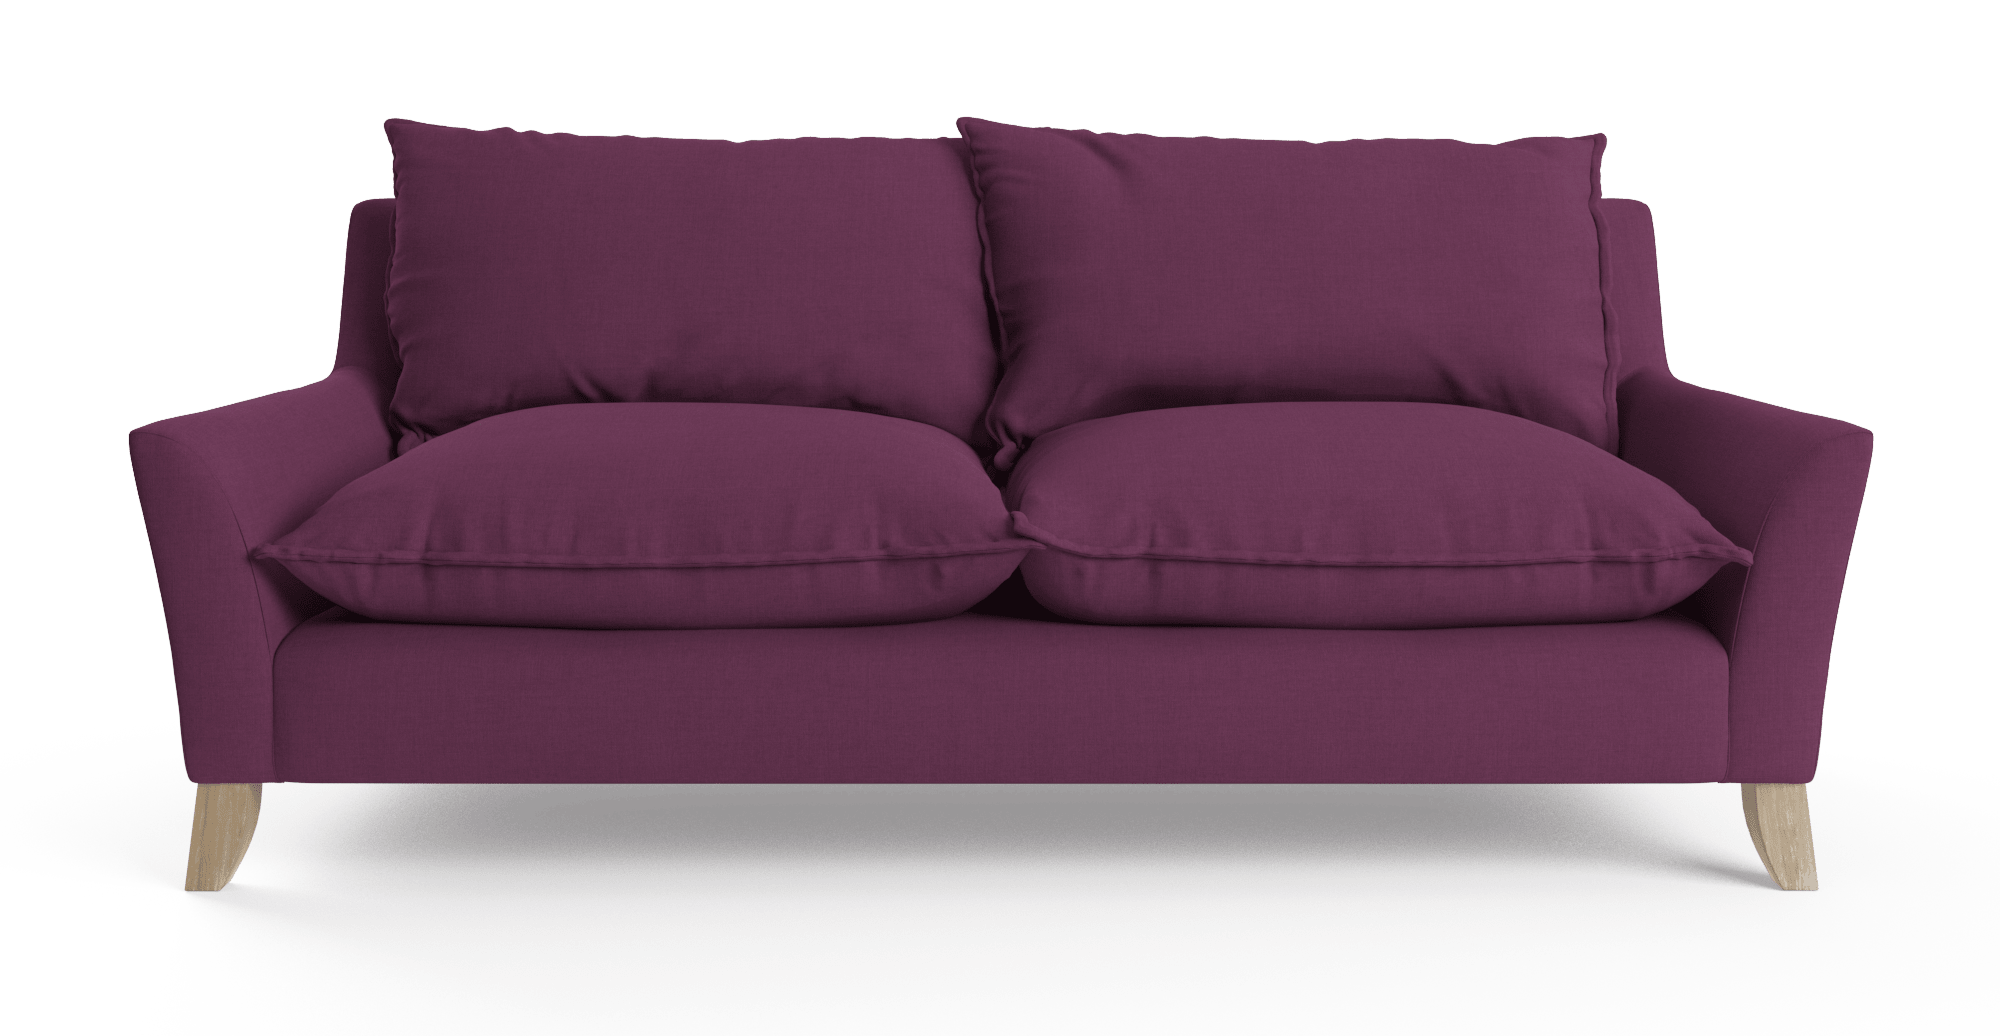 Purple couch png. Buy charleston seater sofa